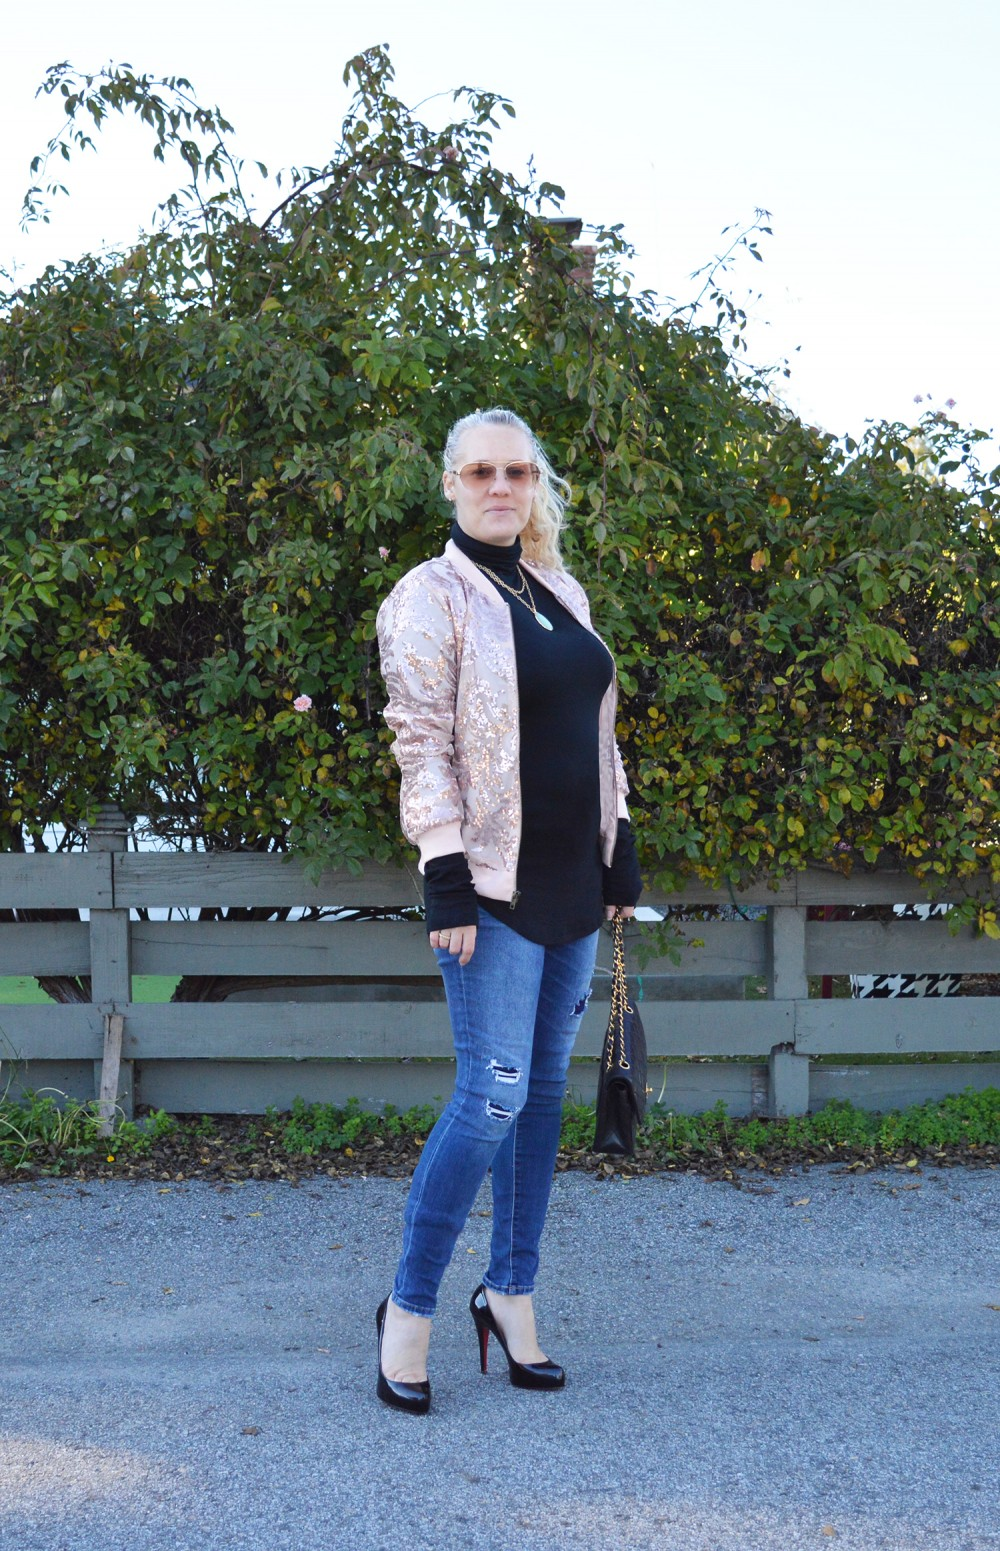 sequin-bomber-jacket-target-style-outfit-inspiration-california-style-have-need-want-7